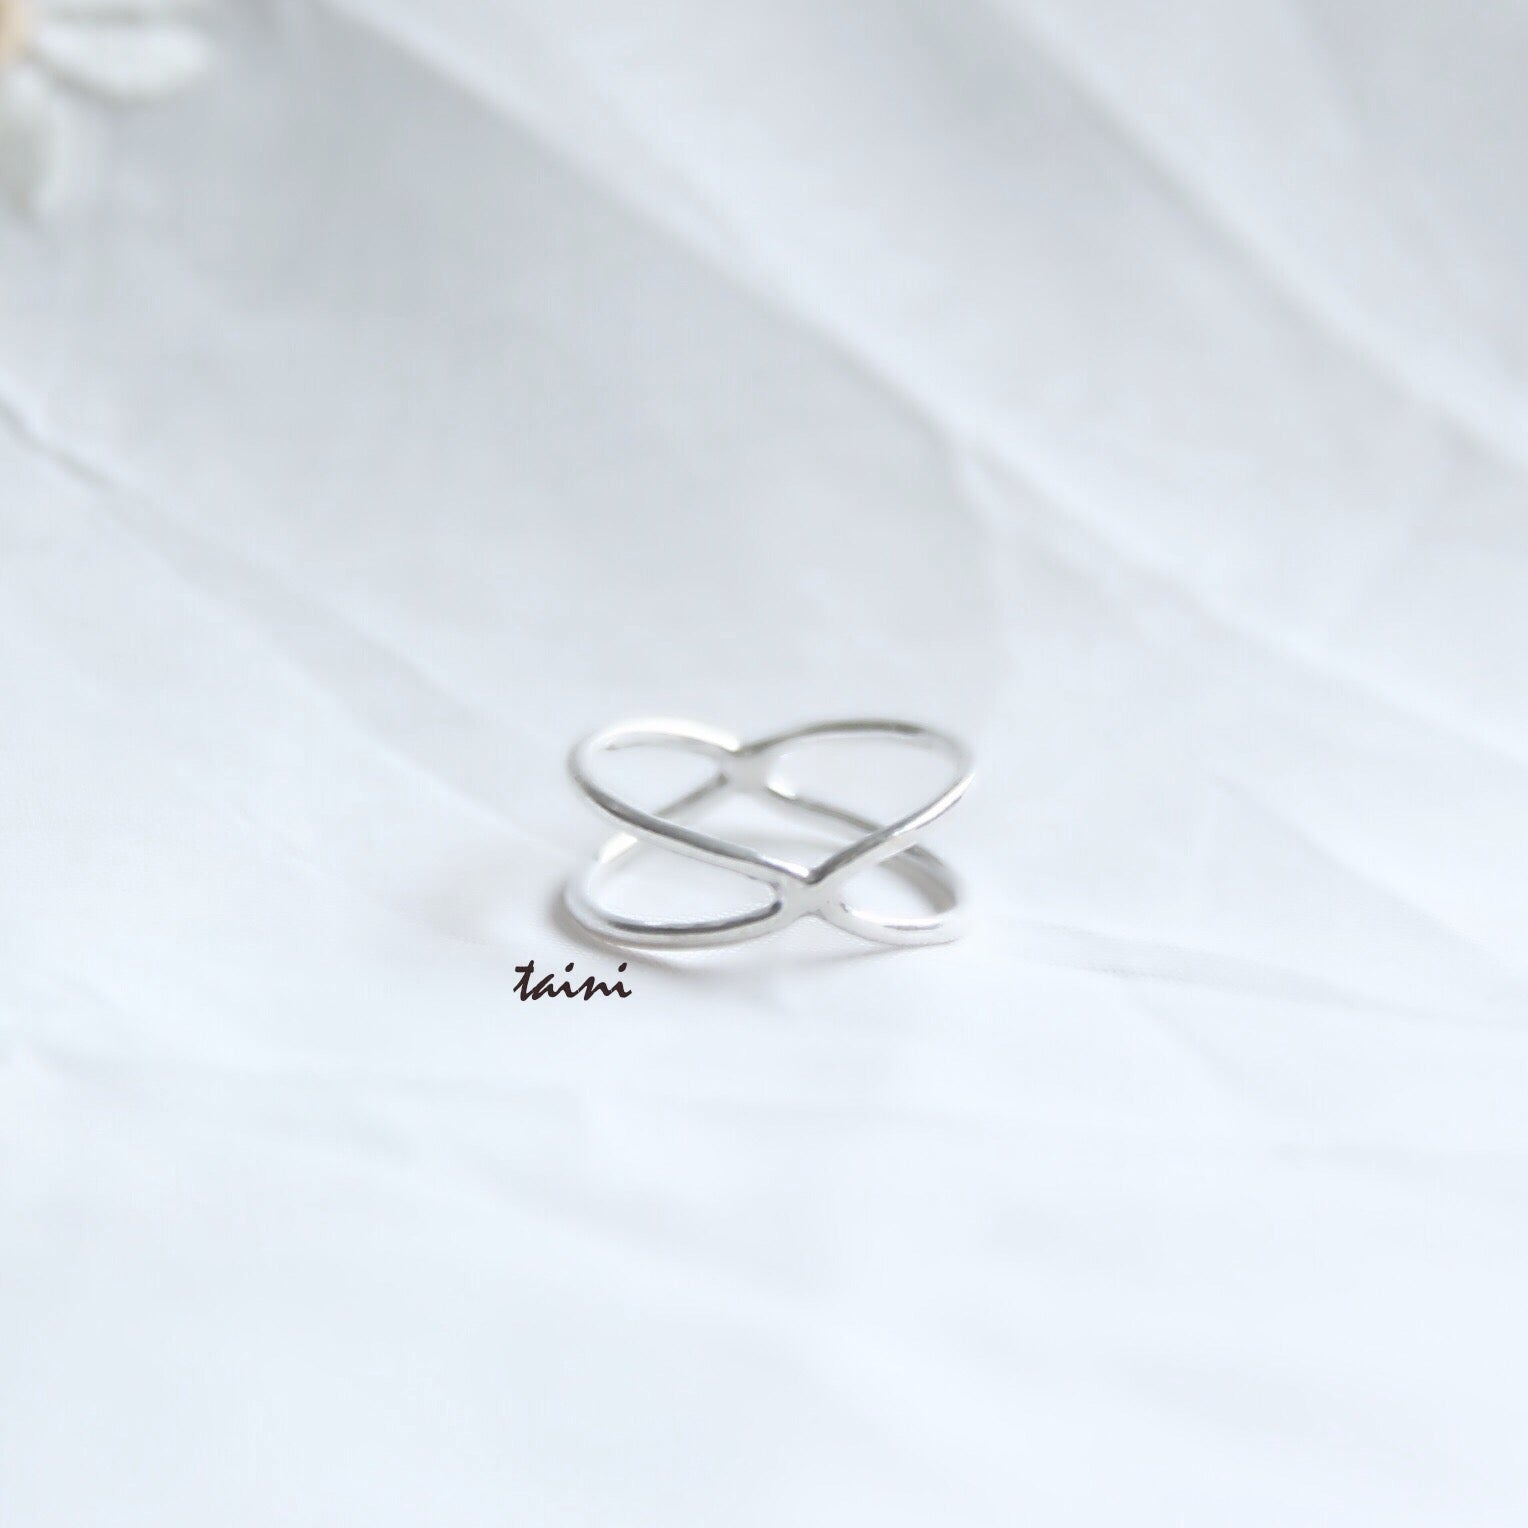 TAINI SILVER - X RING